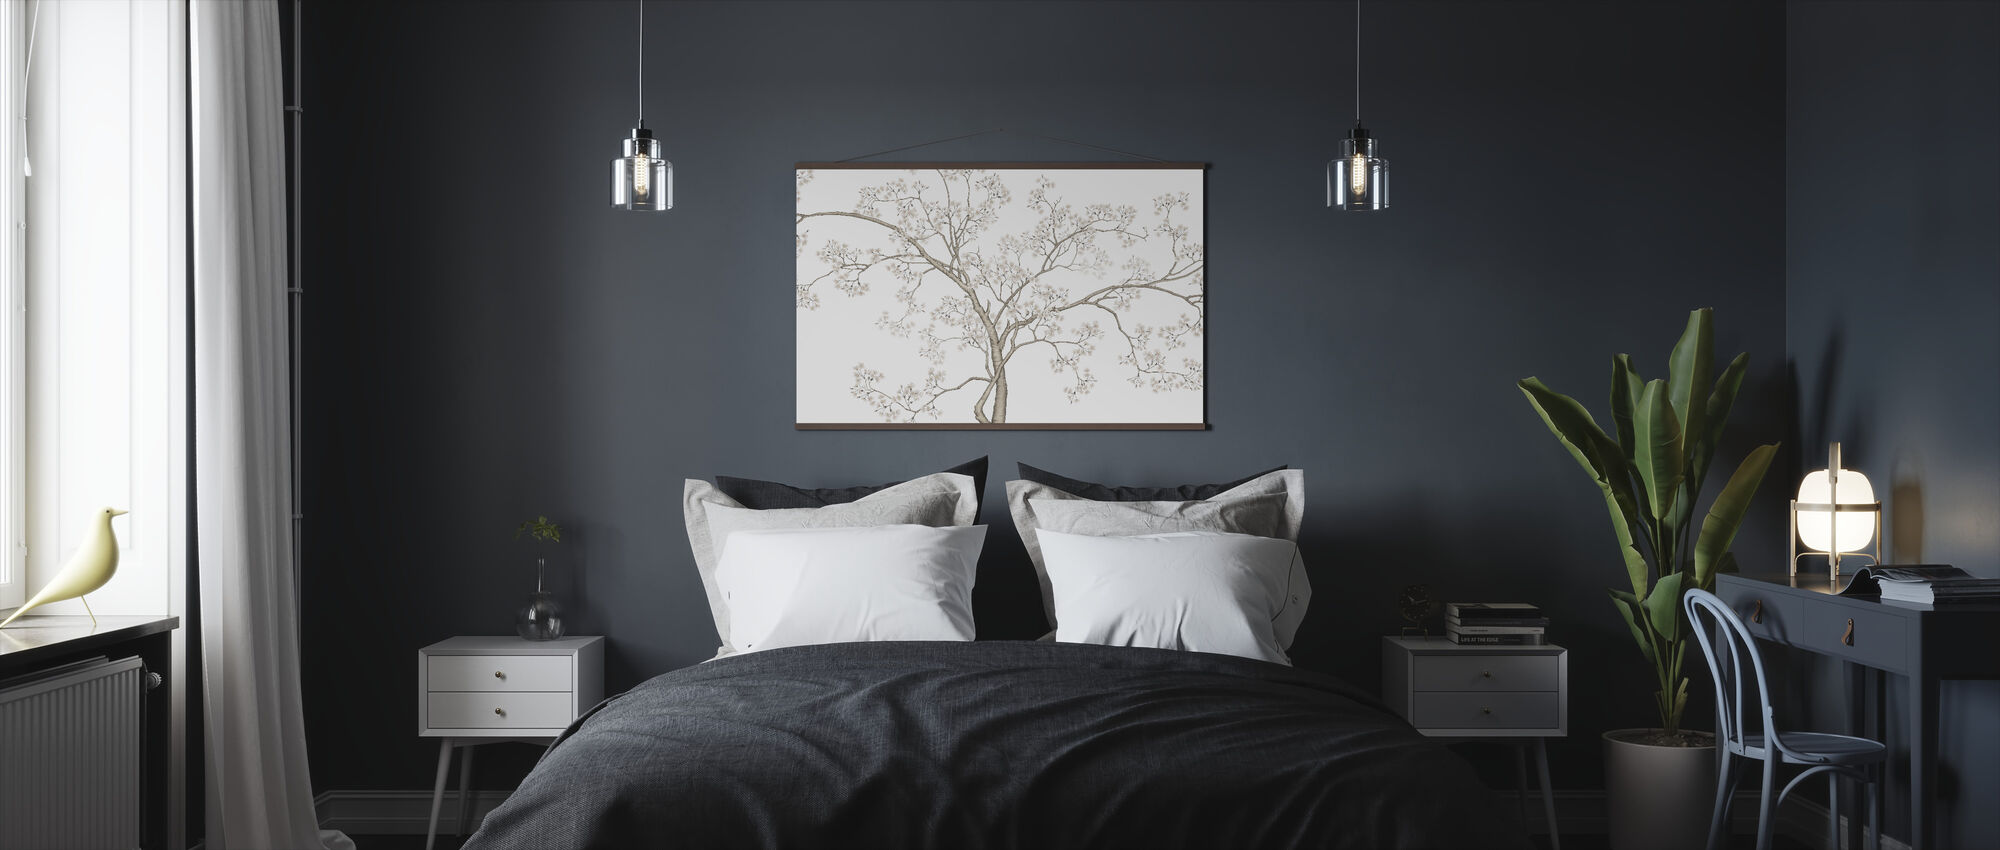 The Tree - Poster - Bedroom